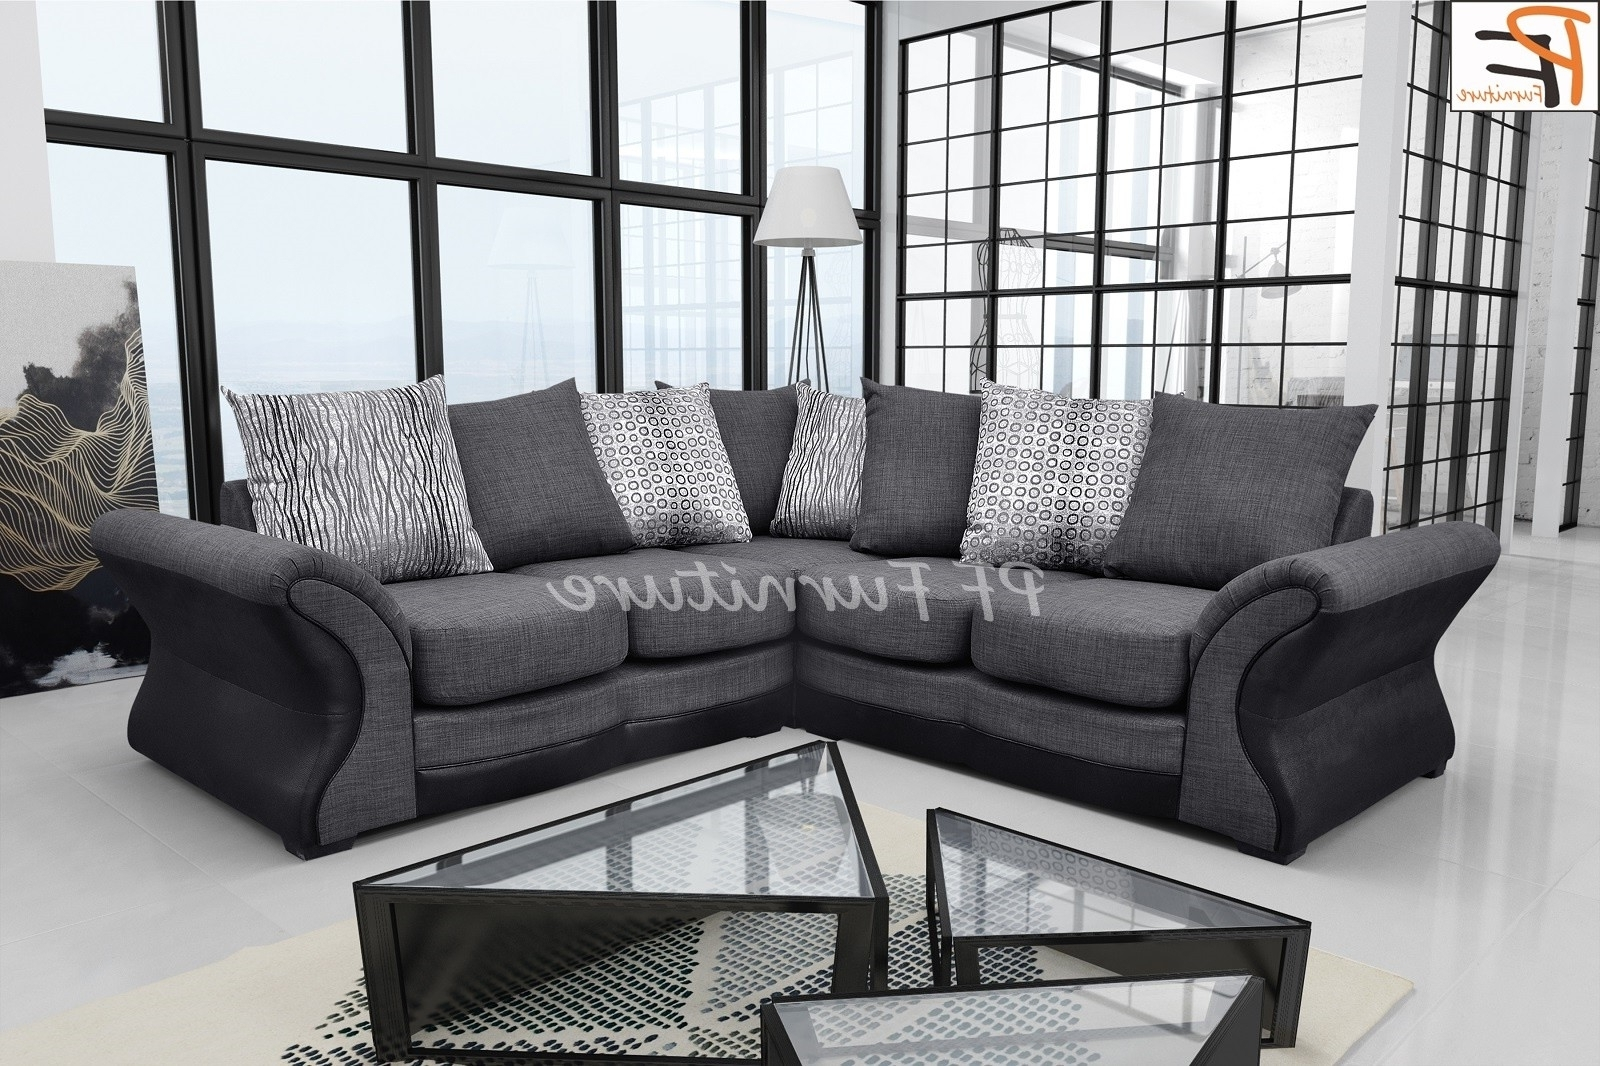 Fabric Corner Sofas Throughout Latest New Candem Fabric Corner Sofa Black/grey – Corner Sofas (View 14 of 20)